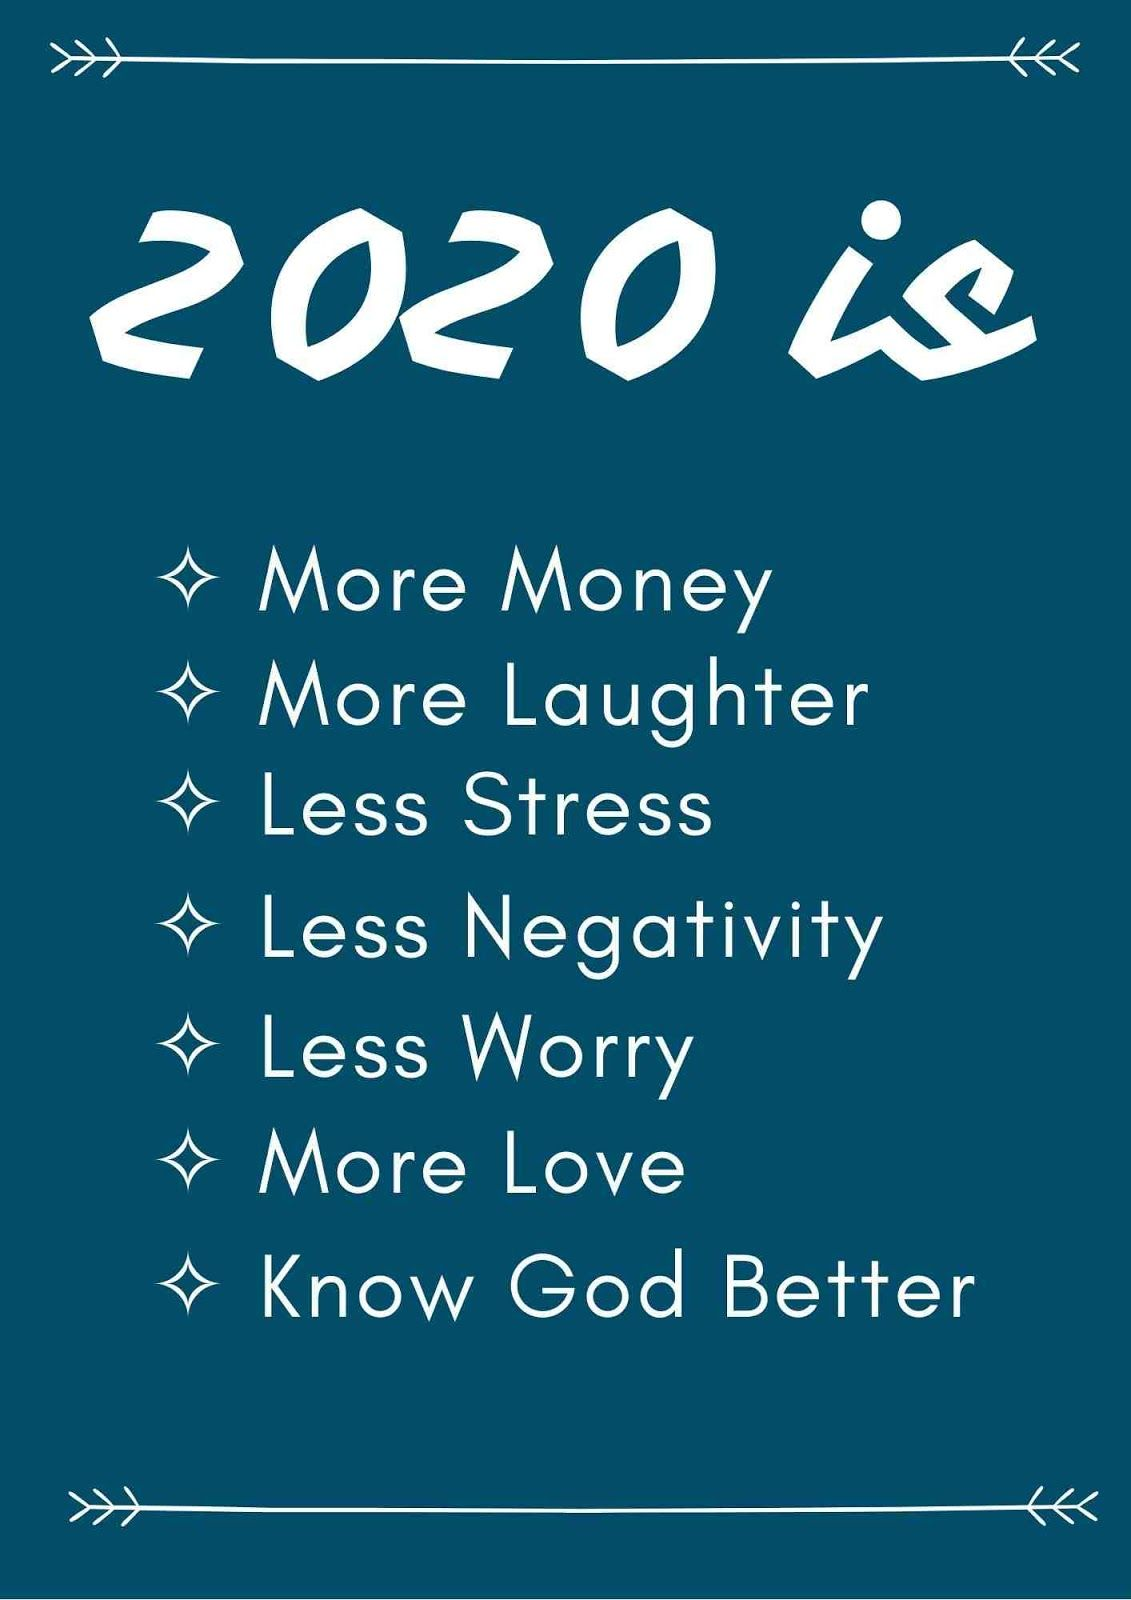 2020imagesnewyearswishes Happy new year quotes